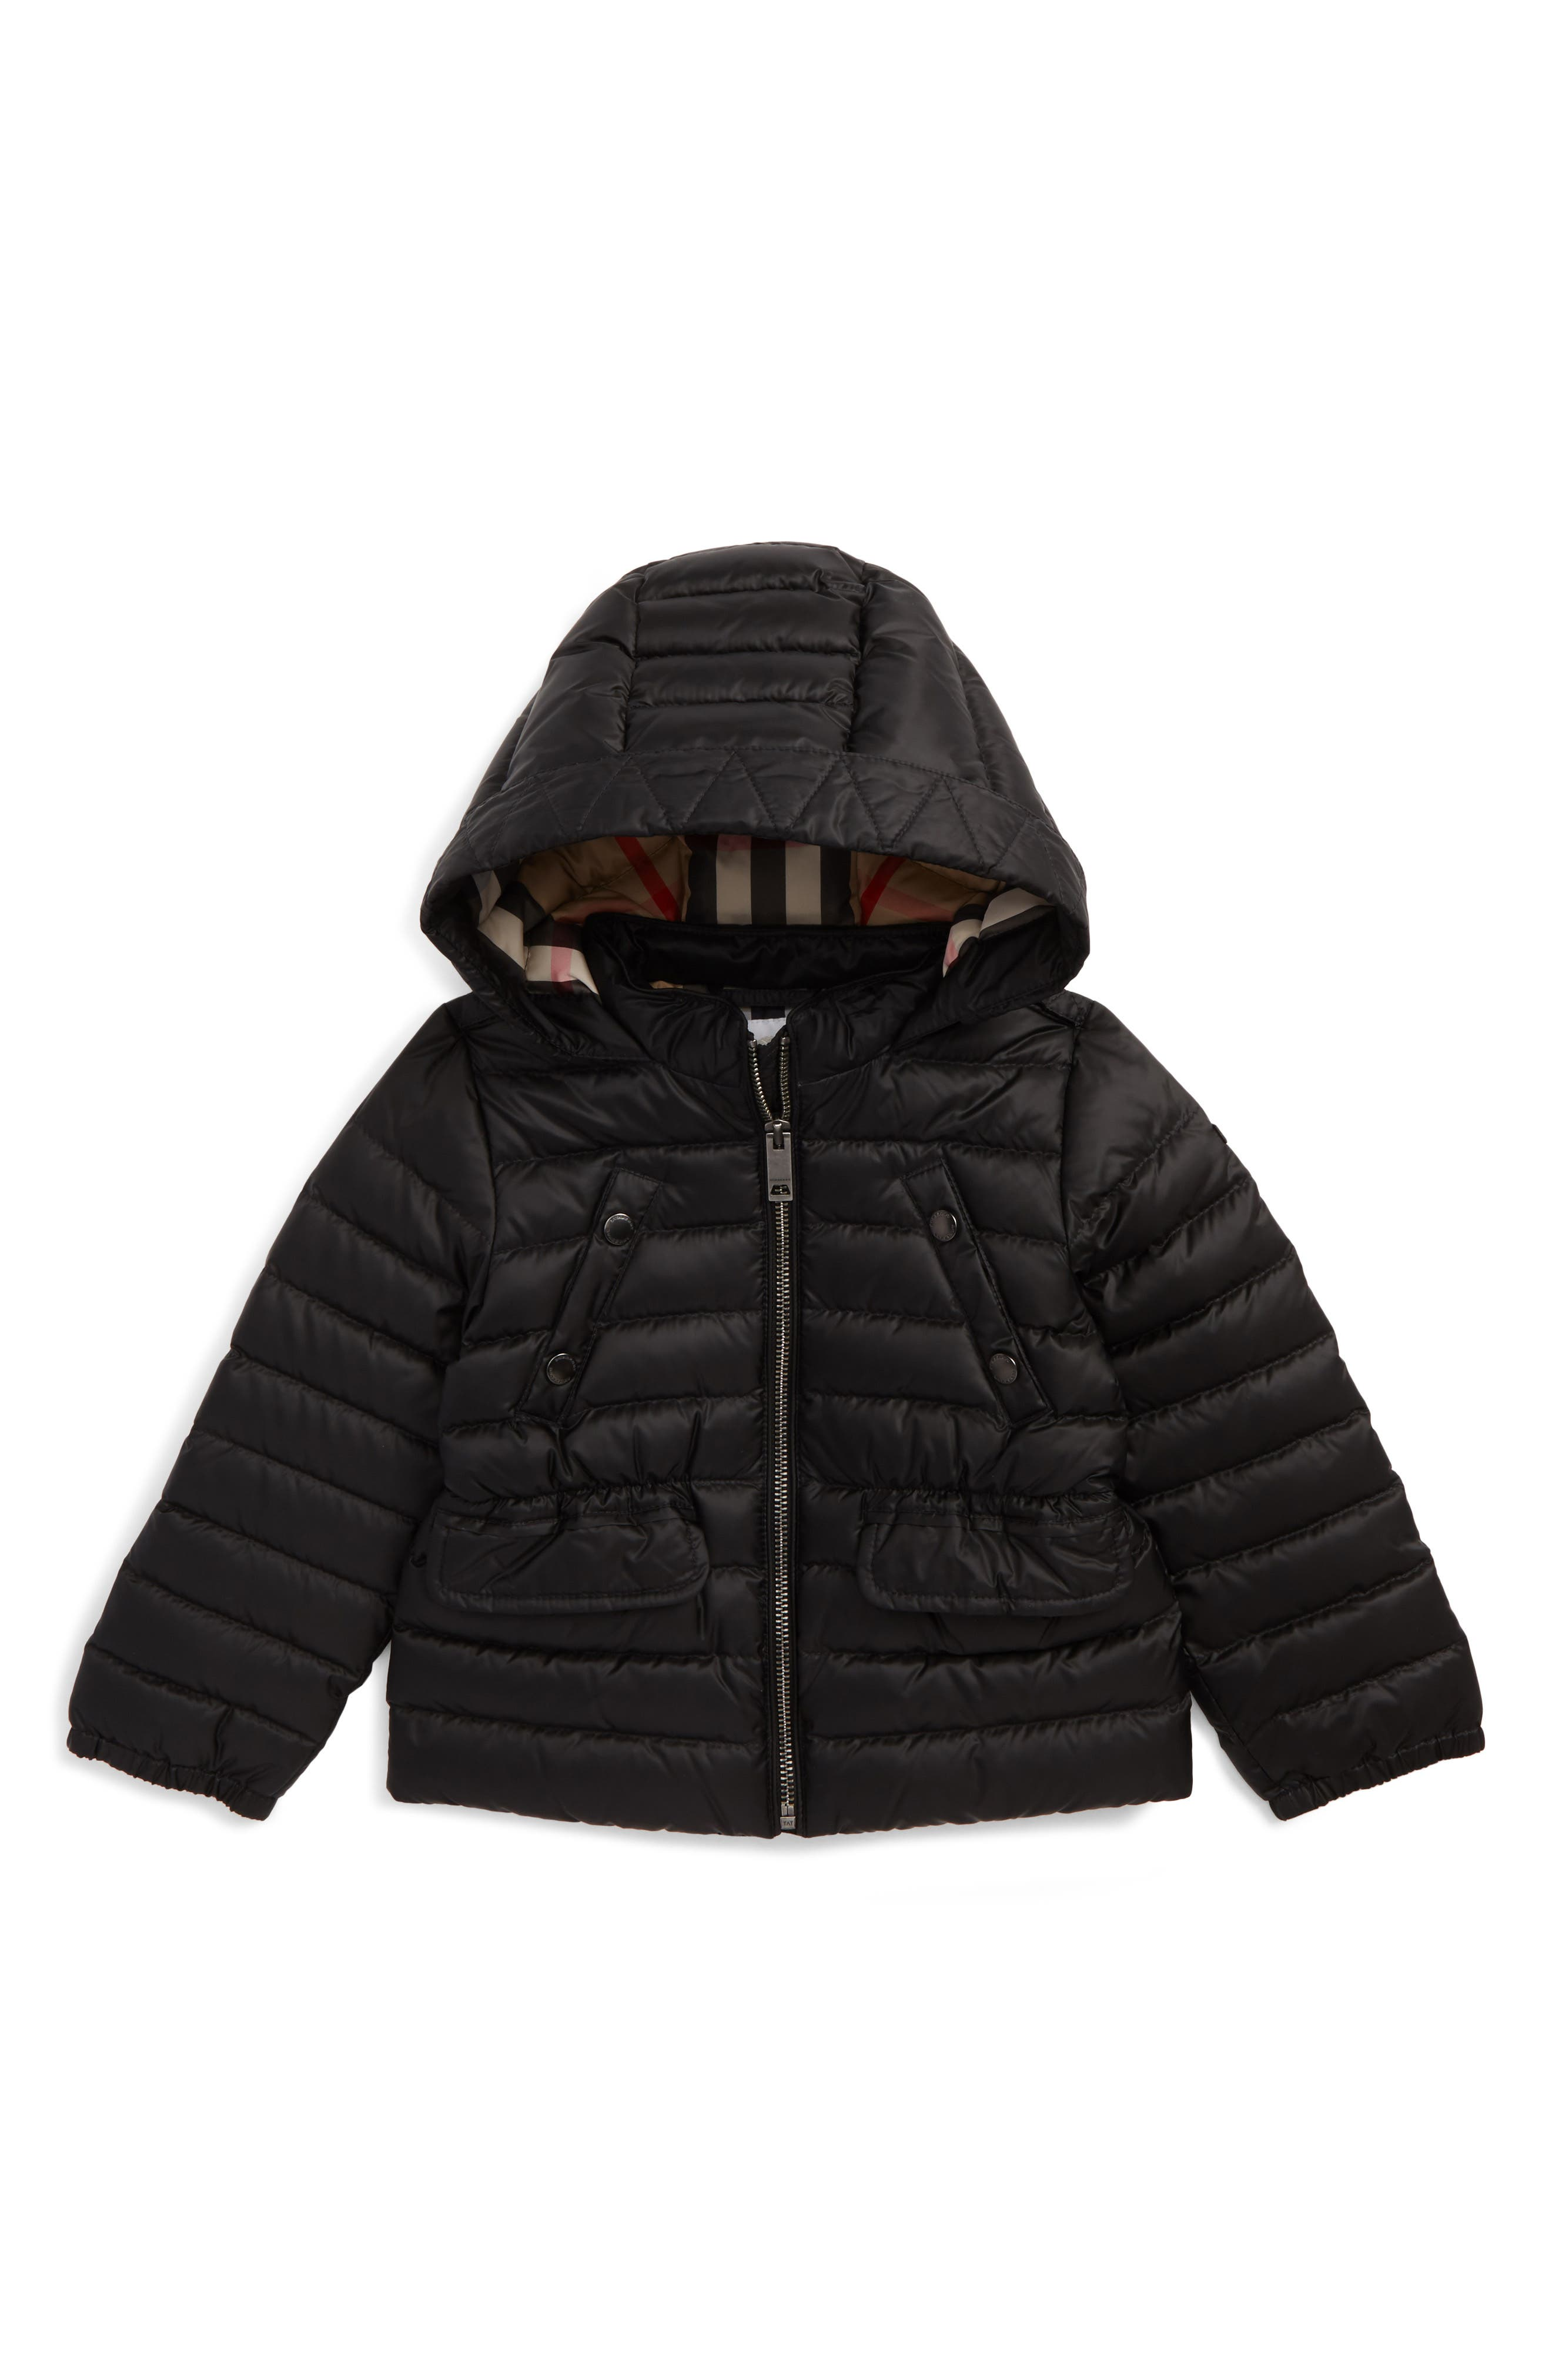 Alternate Image 1 Selected - Burberry Mini Bronwyn Quilted Down Jacket (Baby & Toddler)